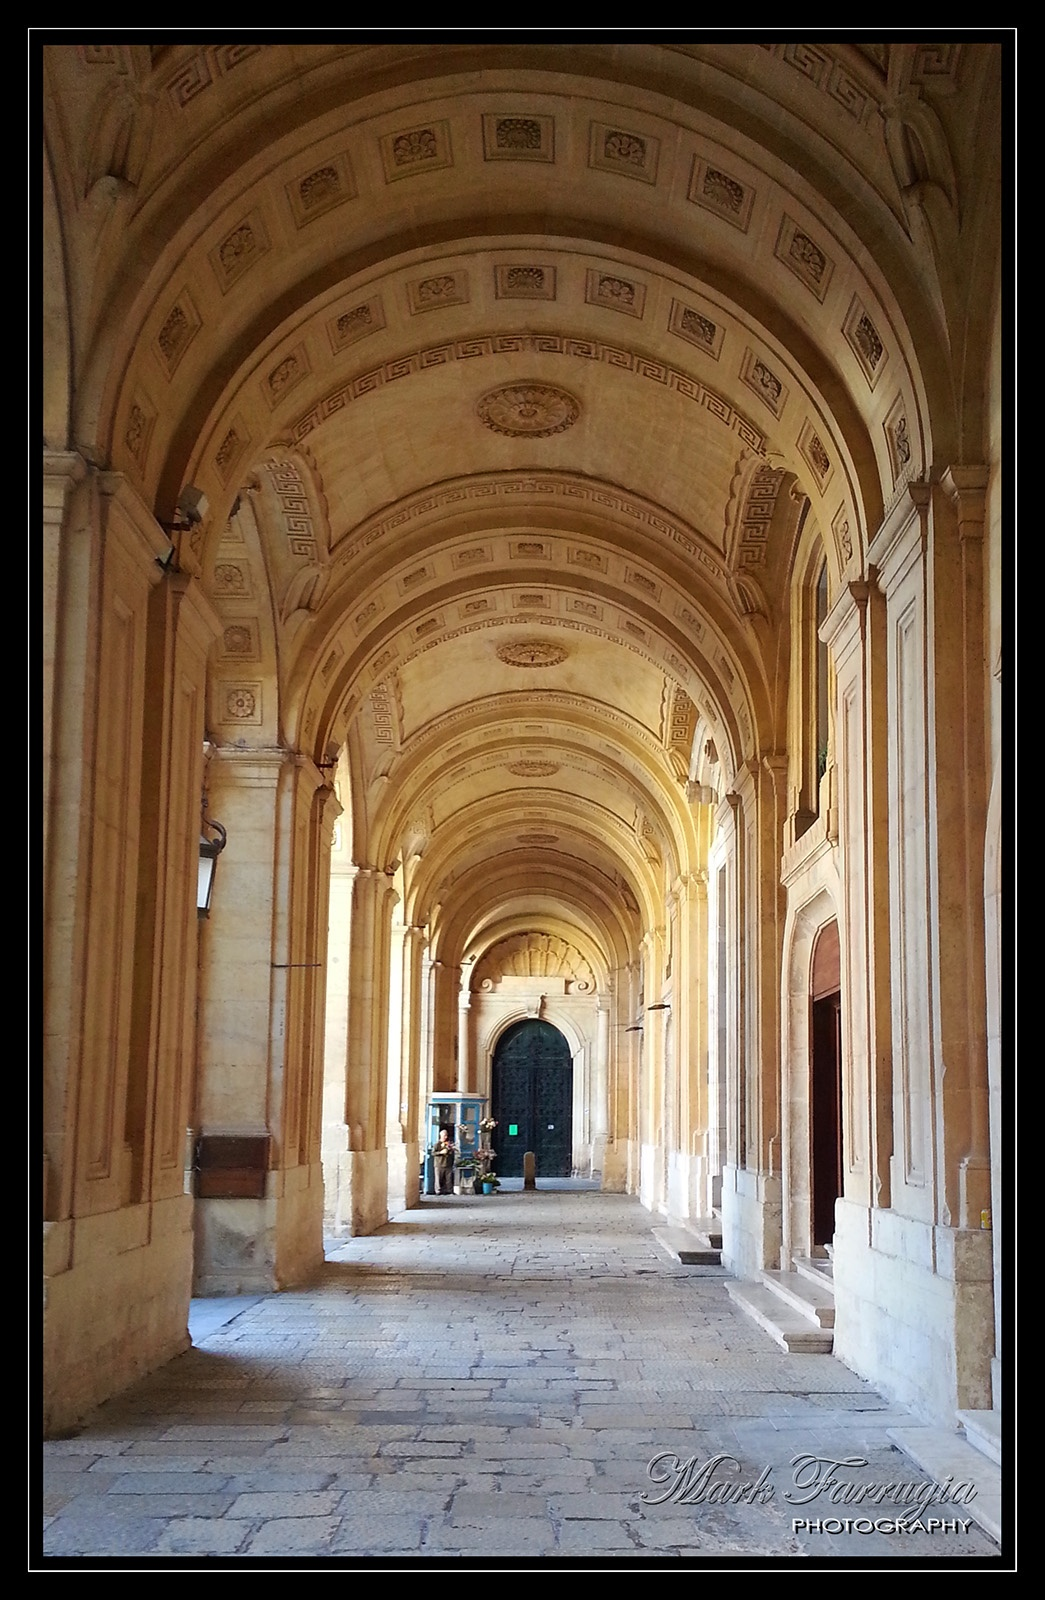 Arched roof by Markf